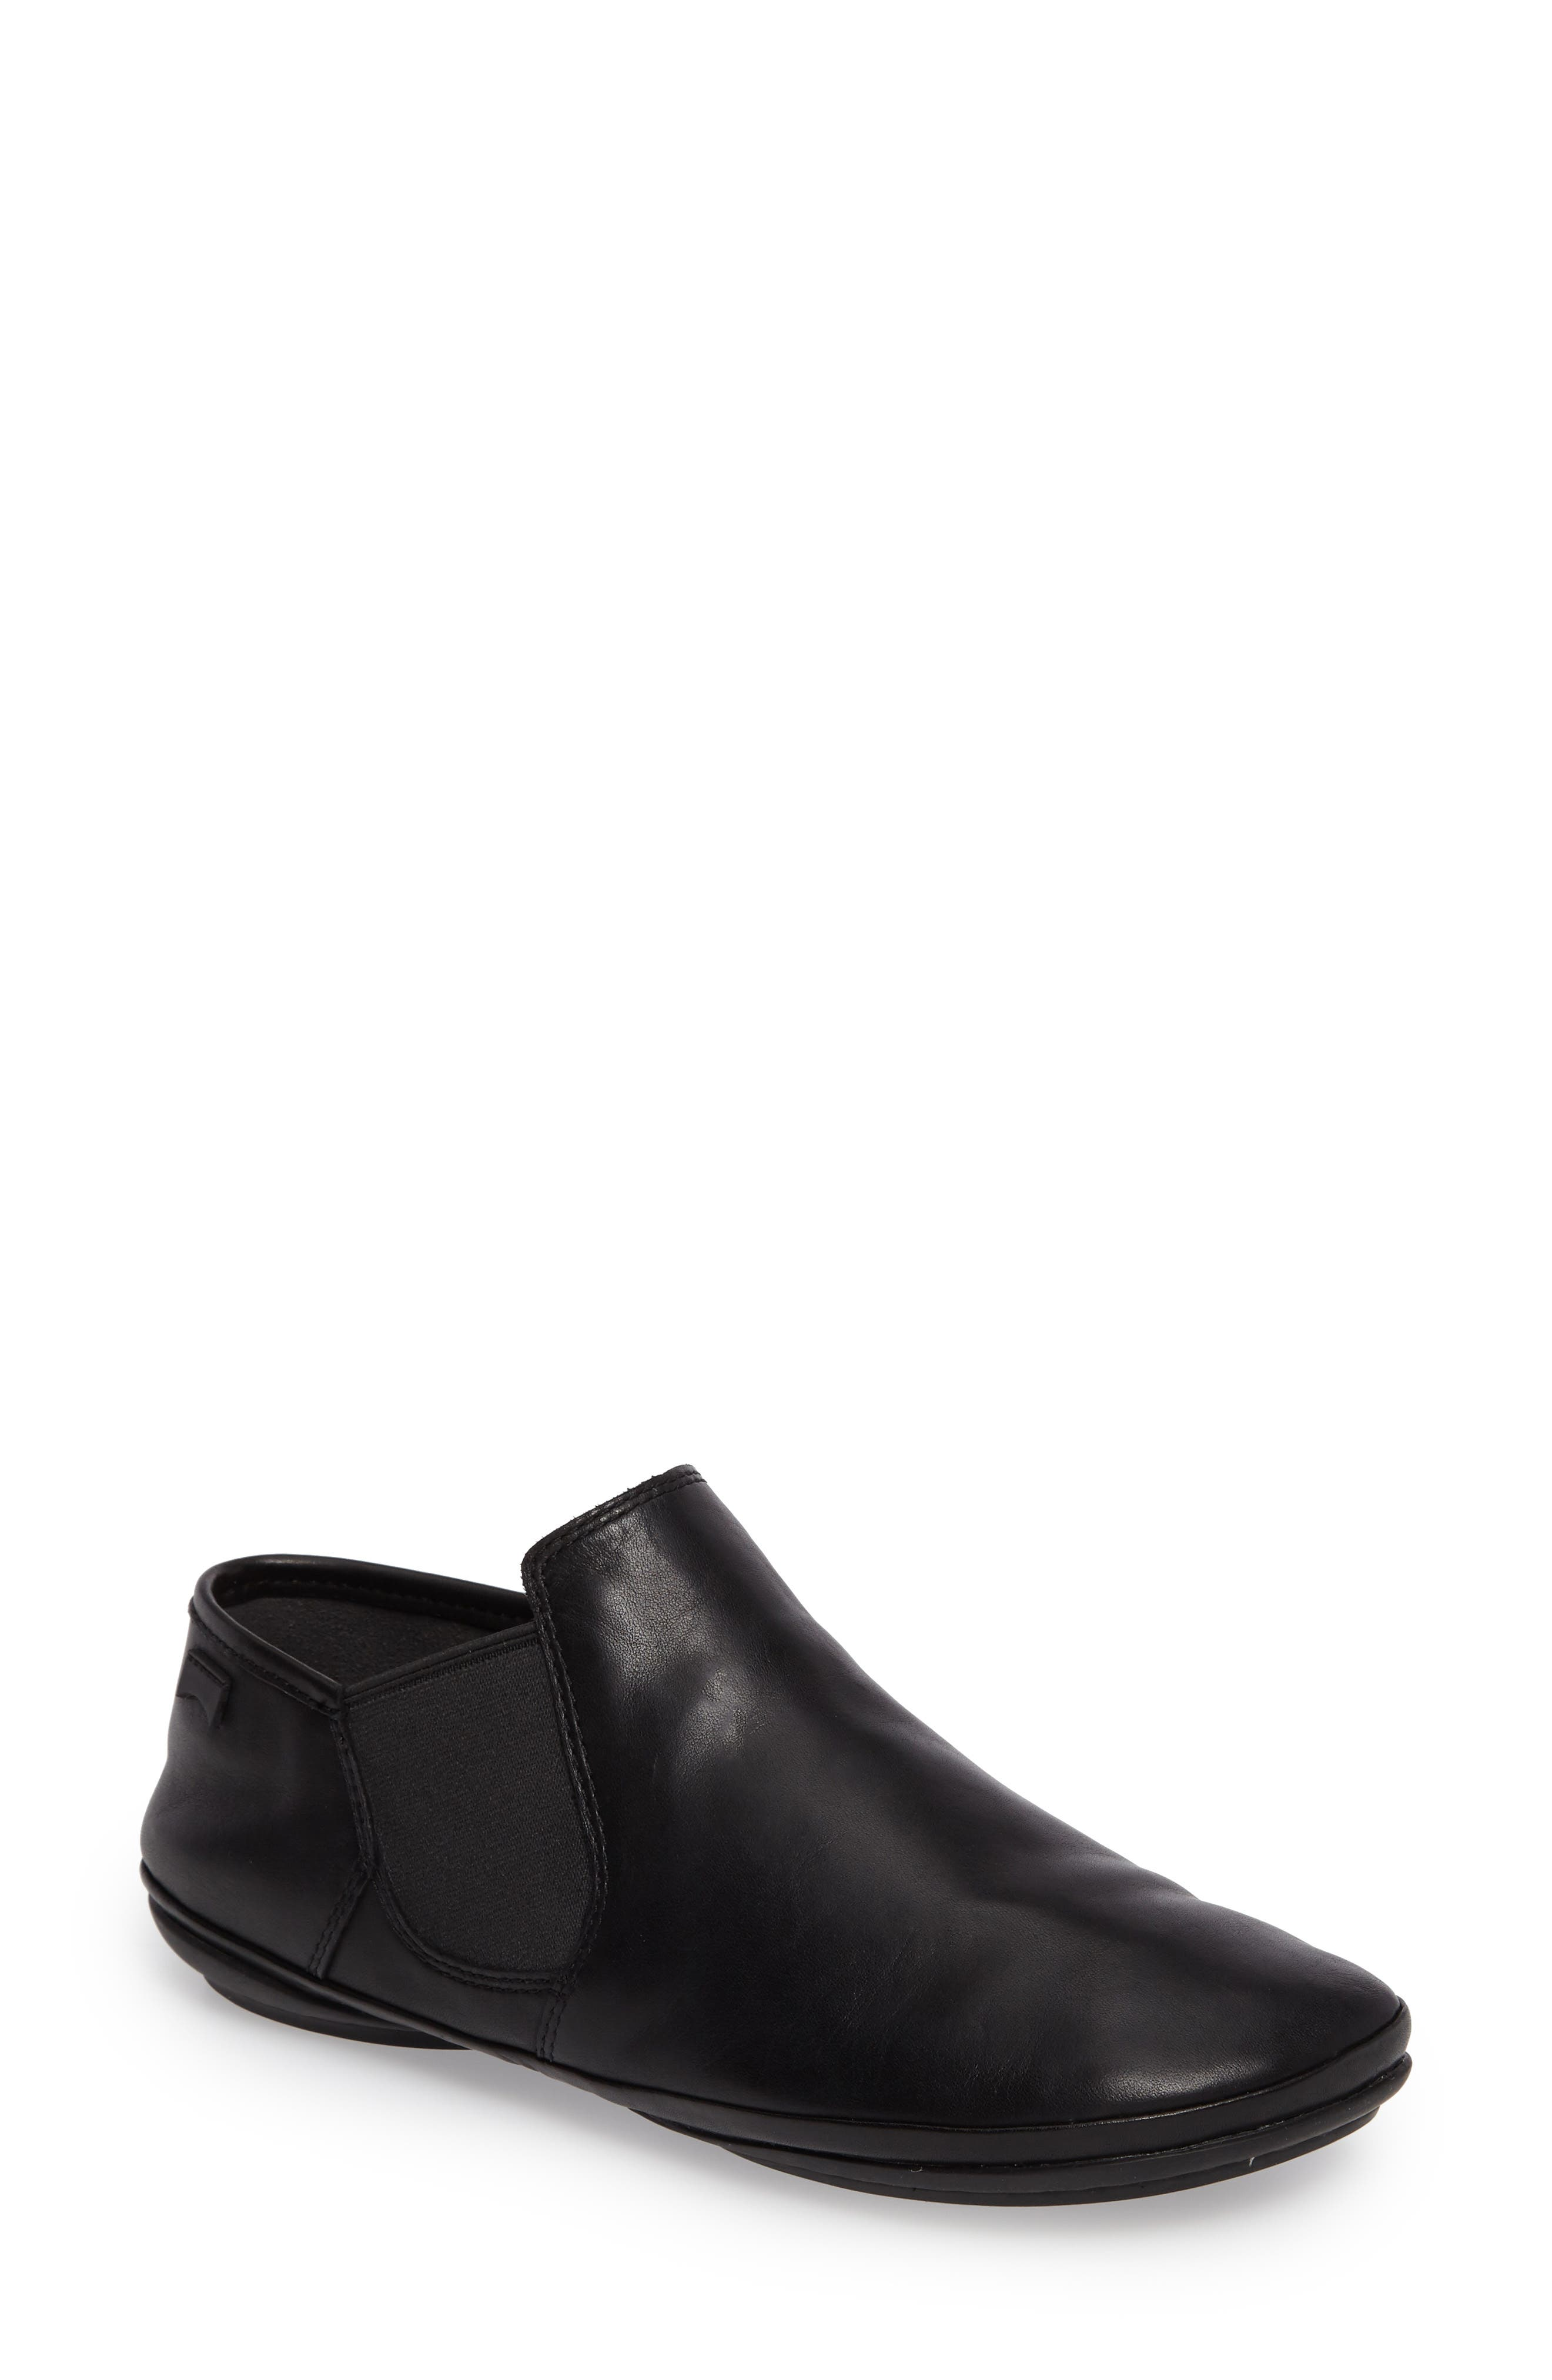 'Right Nina' Bootie,                         Main,                         color, BLACK LEATHER